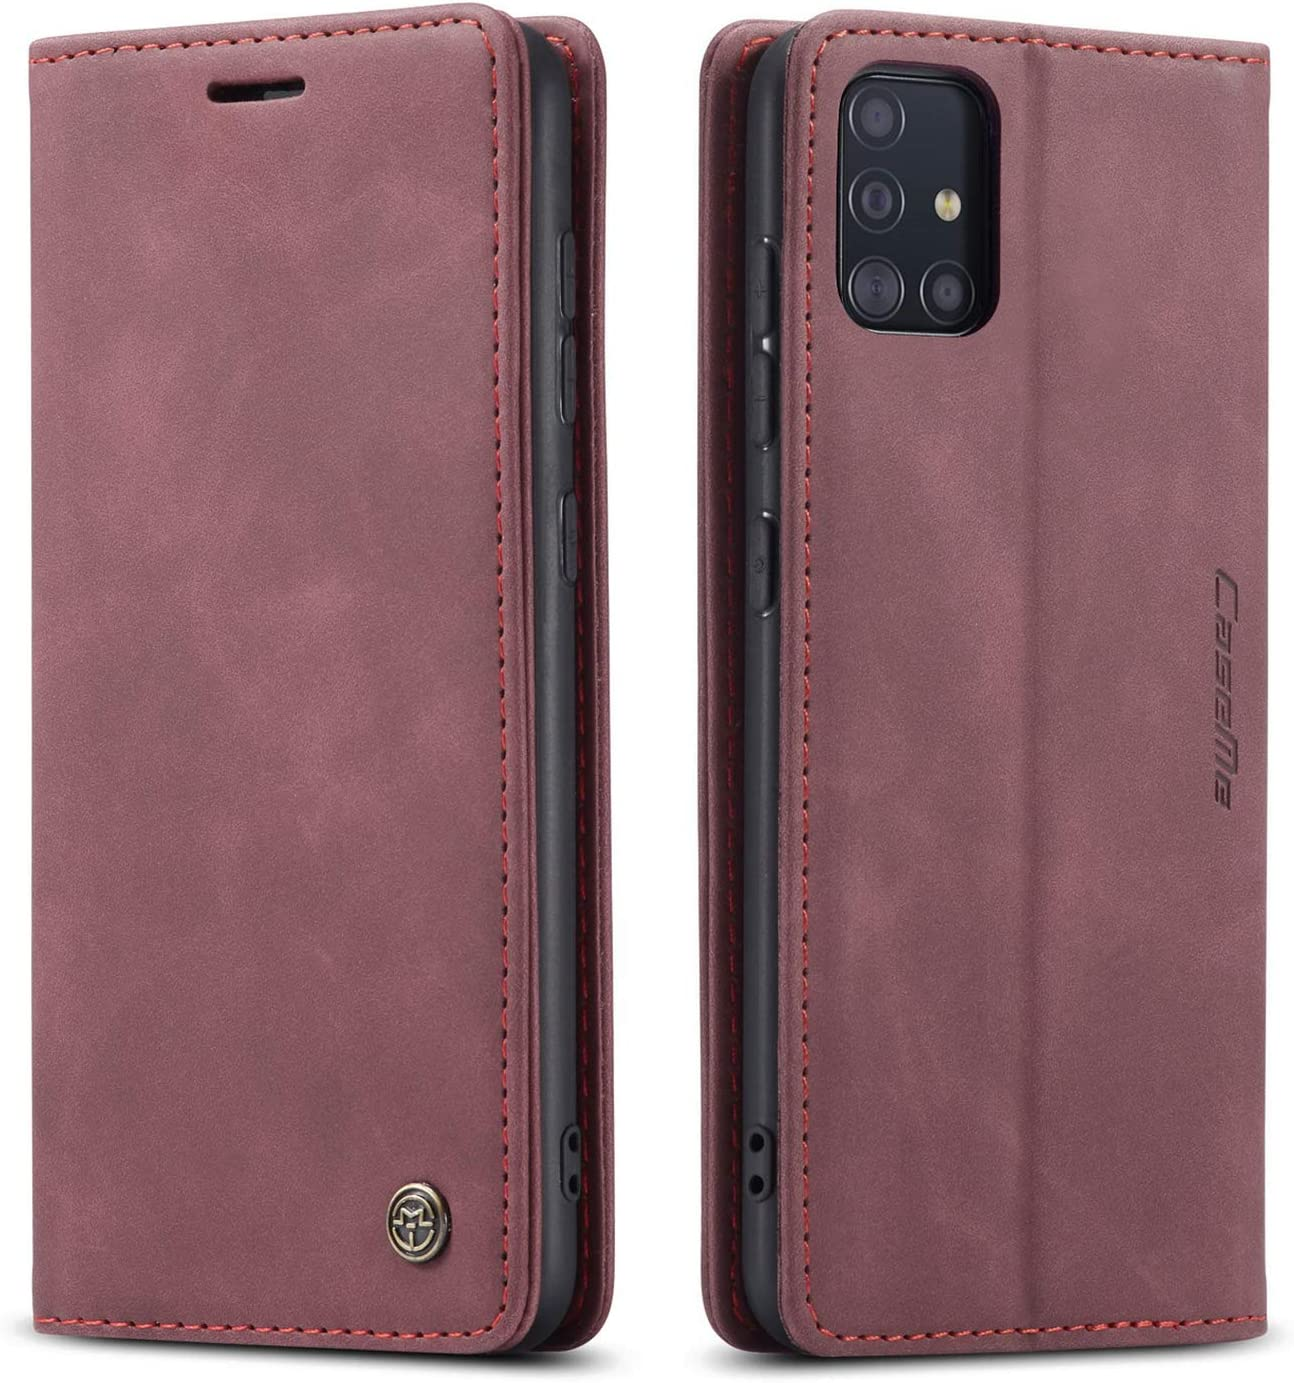 Samsung Galaxy A71 5G Case,Samsung A71 5G Wallet Case with Card Holder Kickstand Magnetic,Leather Flip Case Wallet for Samsung Galaxy A71 5G 6.7 Inch (Wine Red)